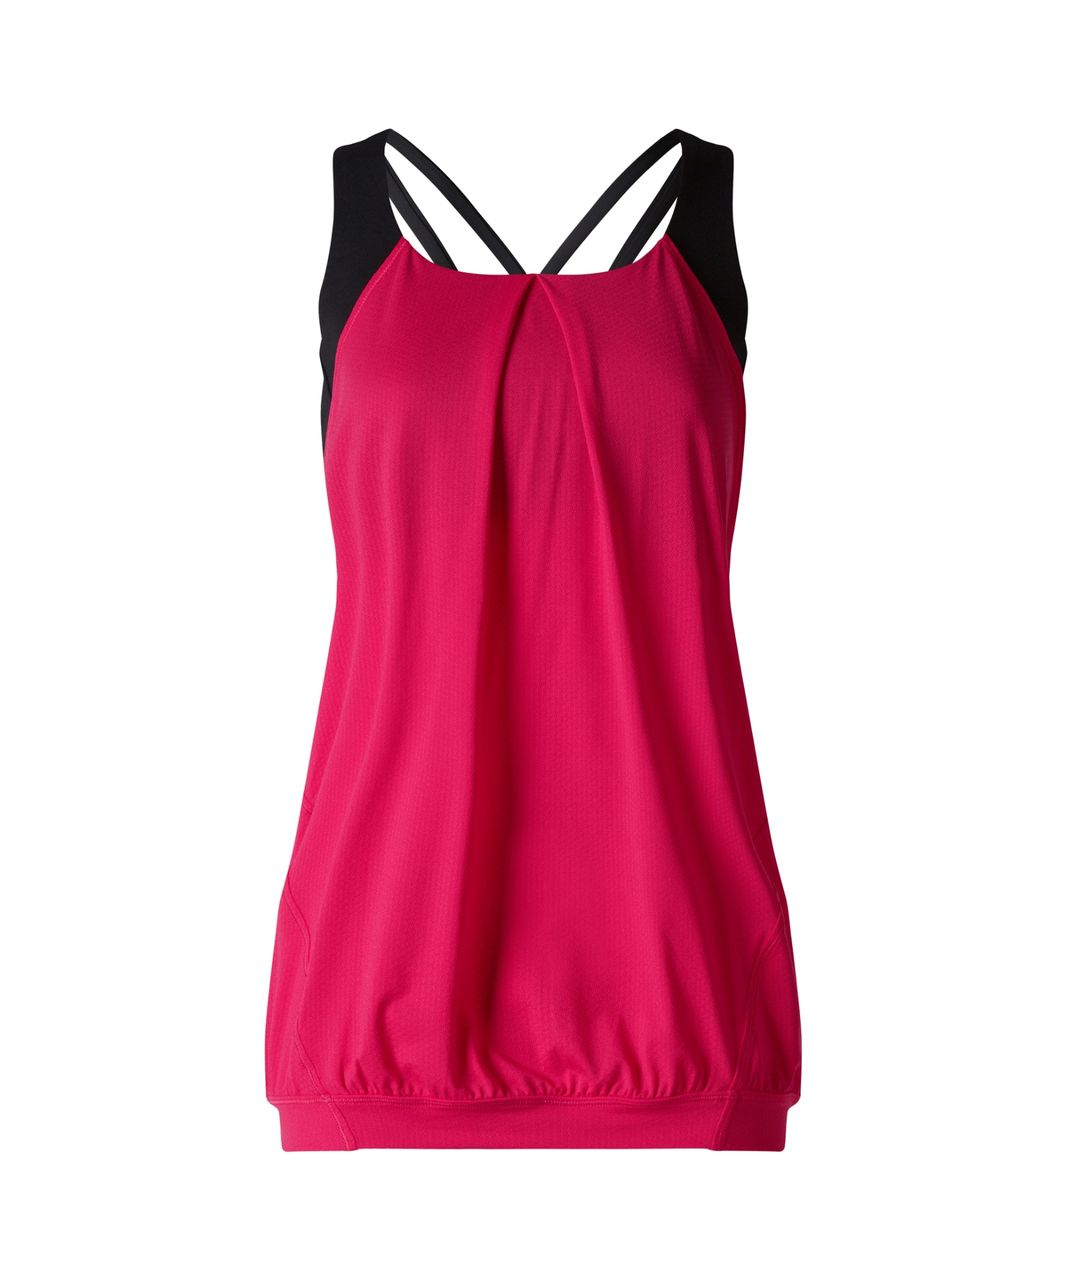 Lululemon Nouveau Limits Tank - Boom Juice / Black